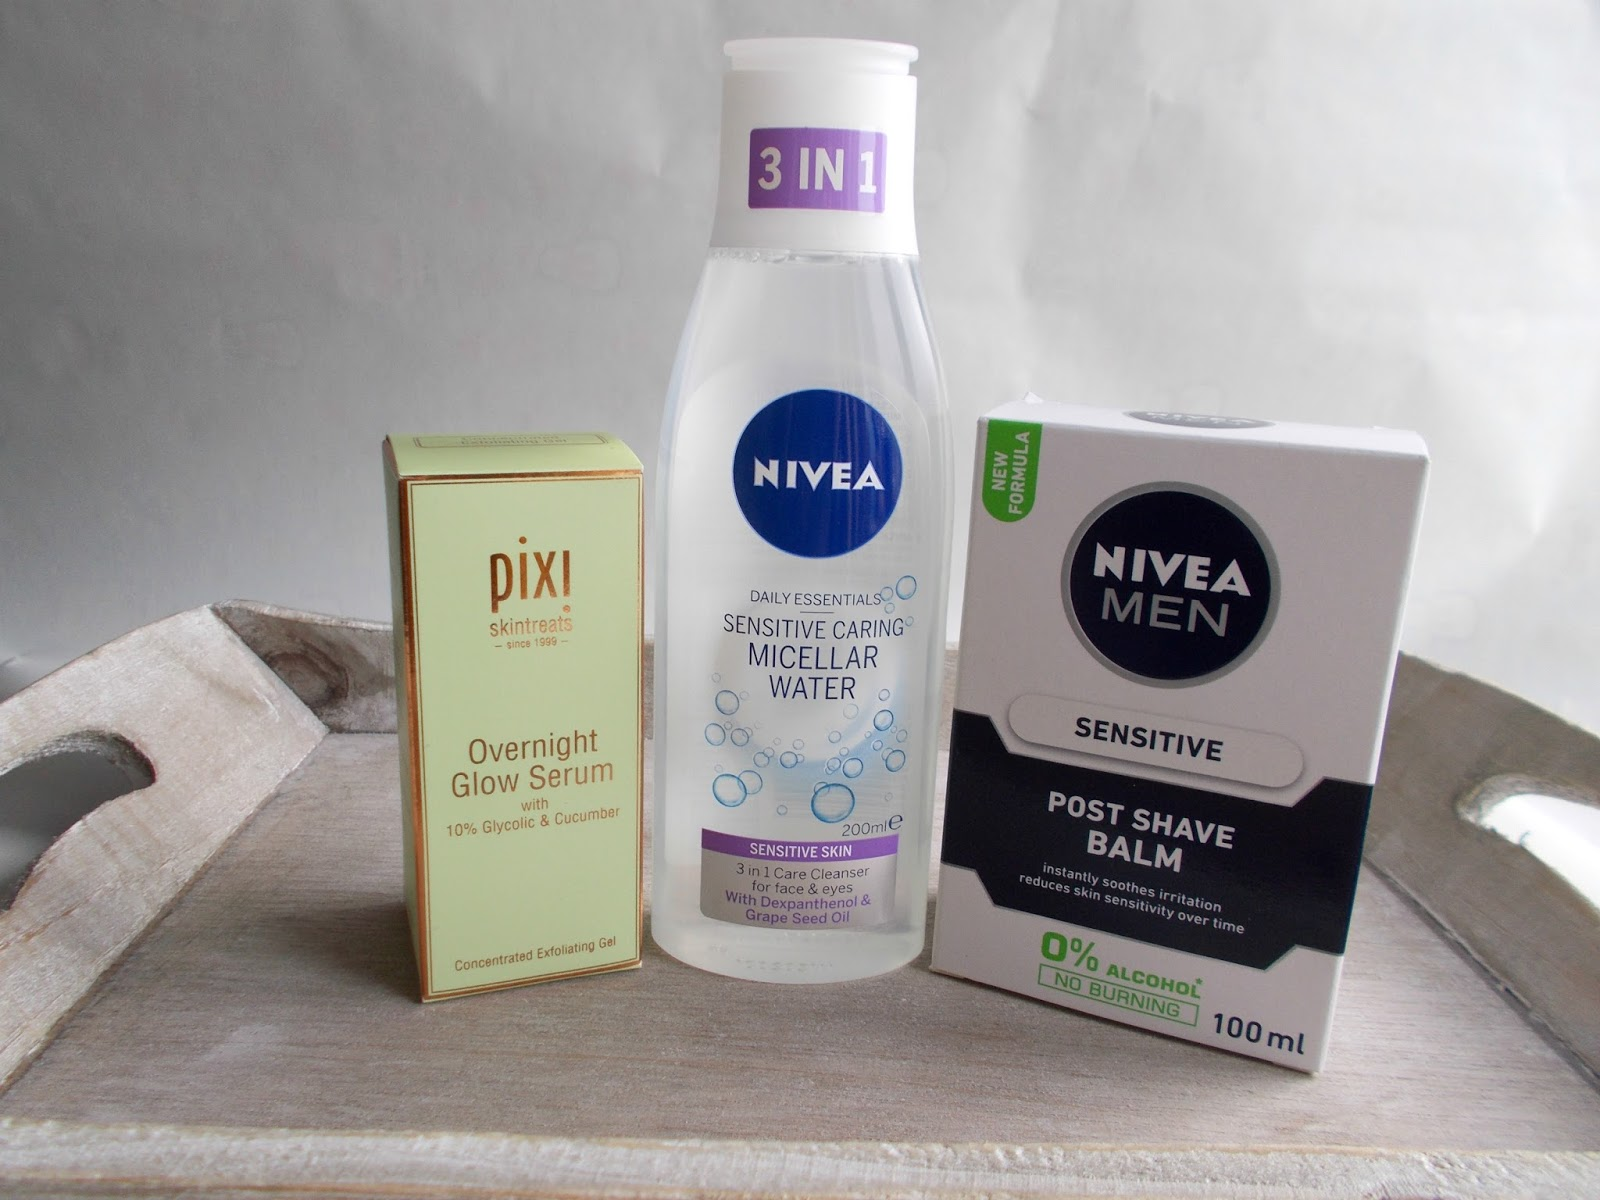 skincare nivea sensitive caring micellar water sensitive post shave balm primer pixi overnight glow serum